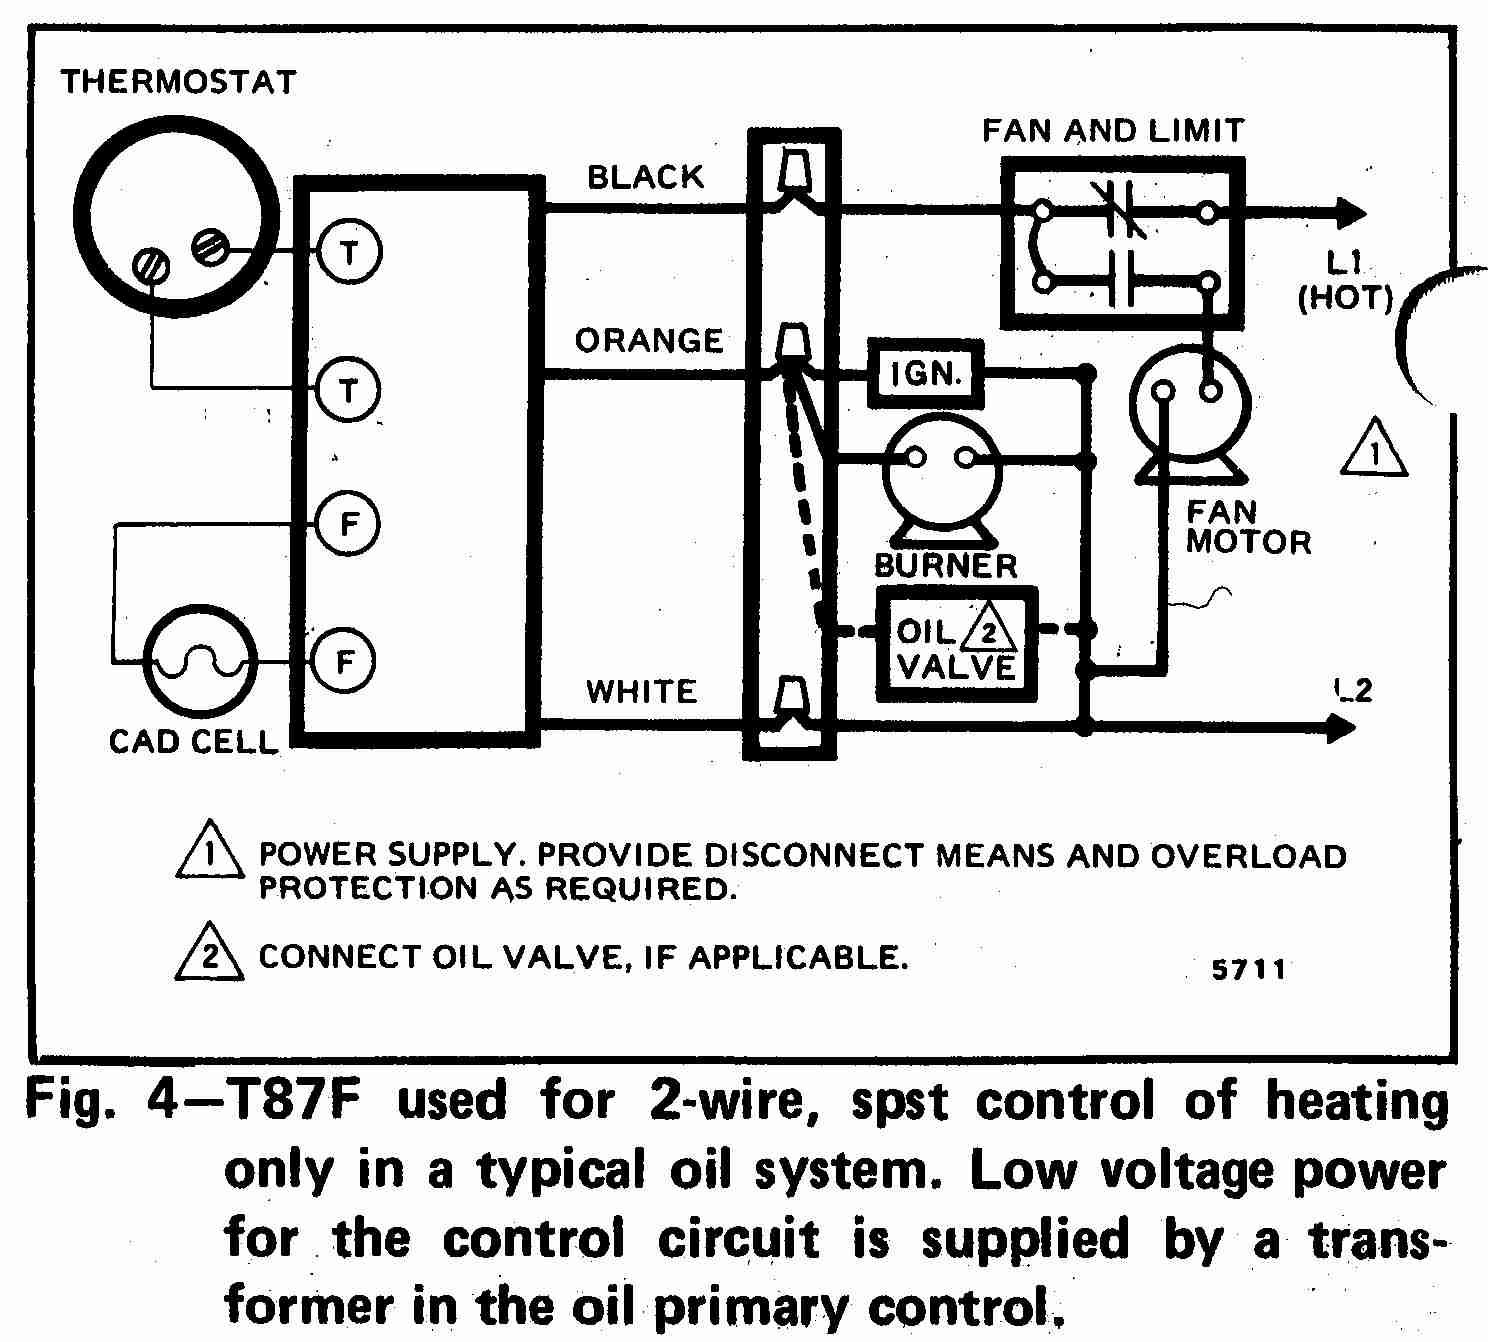 DIAGRAM] Sears Thermostat Wiring Diagram FULL Version HD Quality Wiring  Diagram - SCARYDIAGRAMS.GENAZZANOBUONCONSIGLIO.ITscarydiagrams.genazzanobuonconsiglio.it